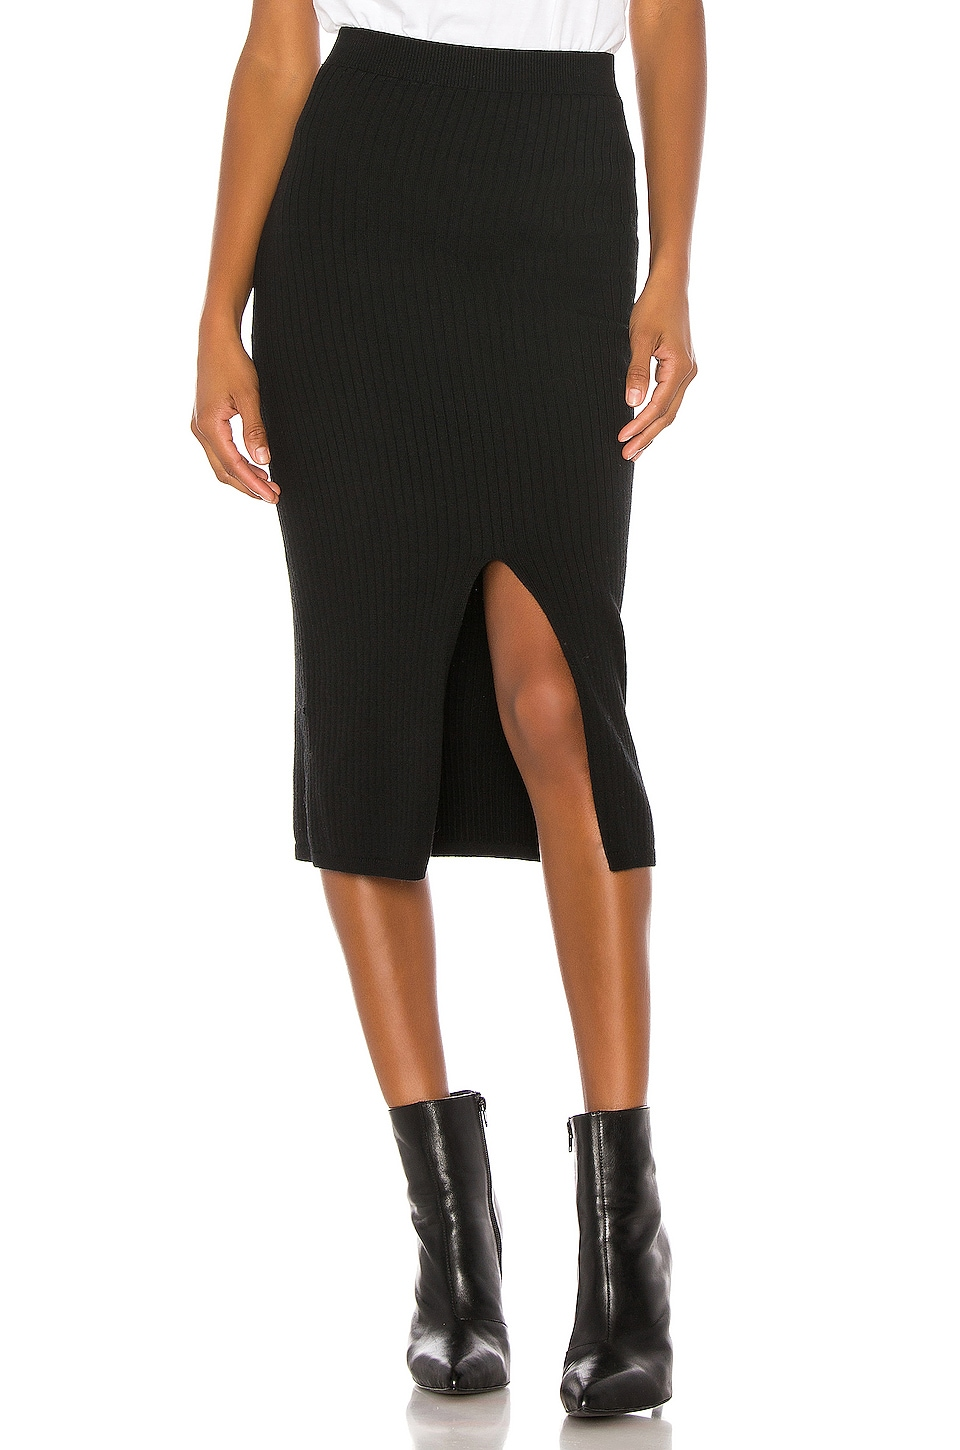 Free People Skyline Midi Skirt in Black